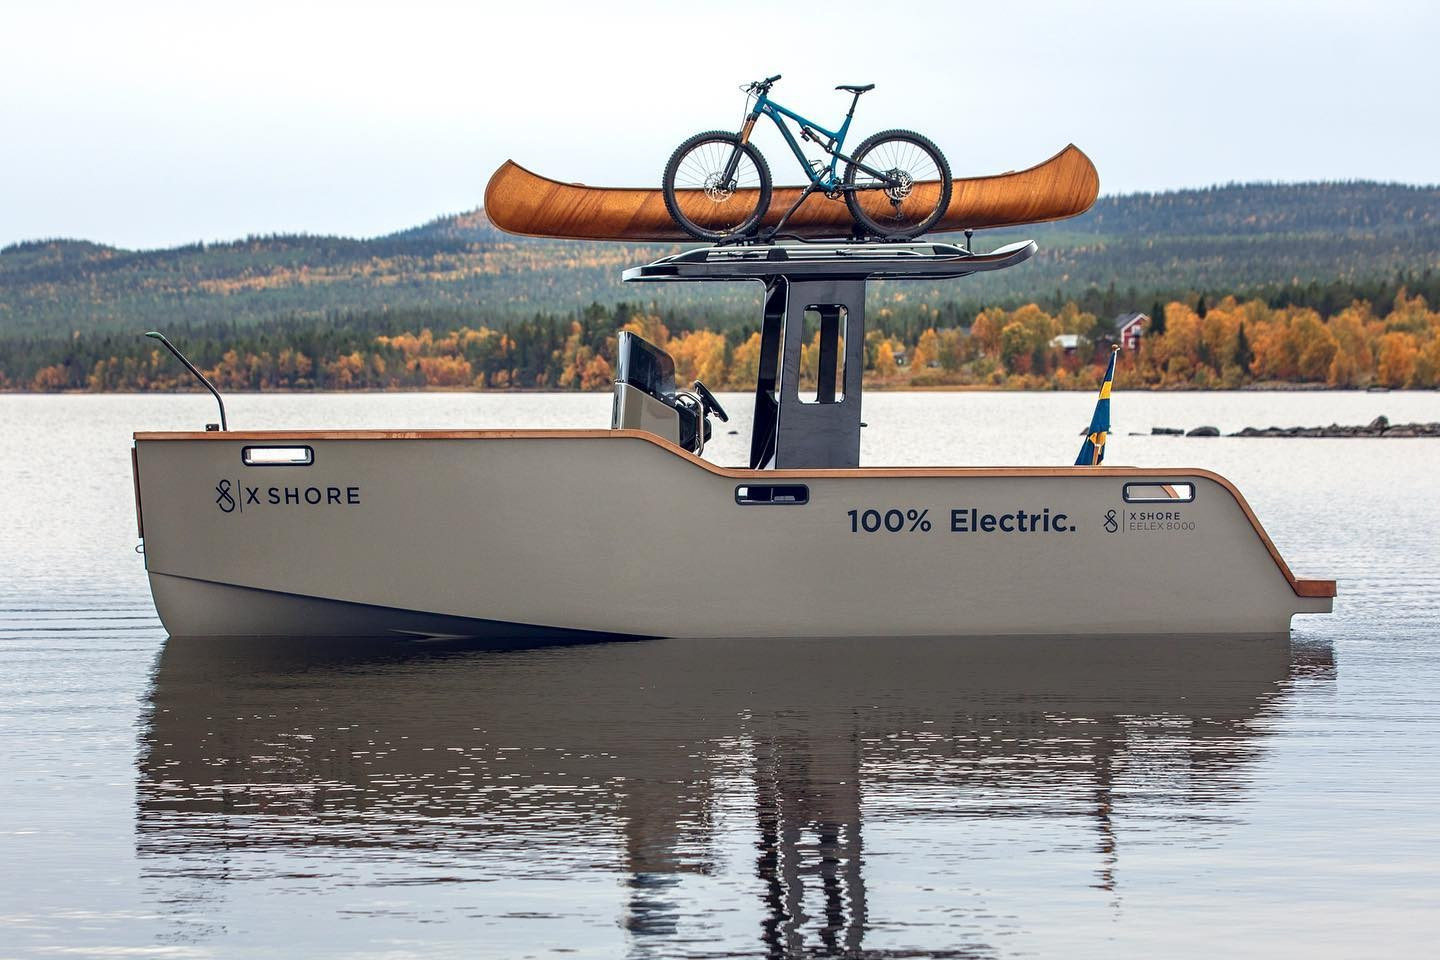 Eelex 8000 from X Shore stationary with bicycle on roof rack